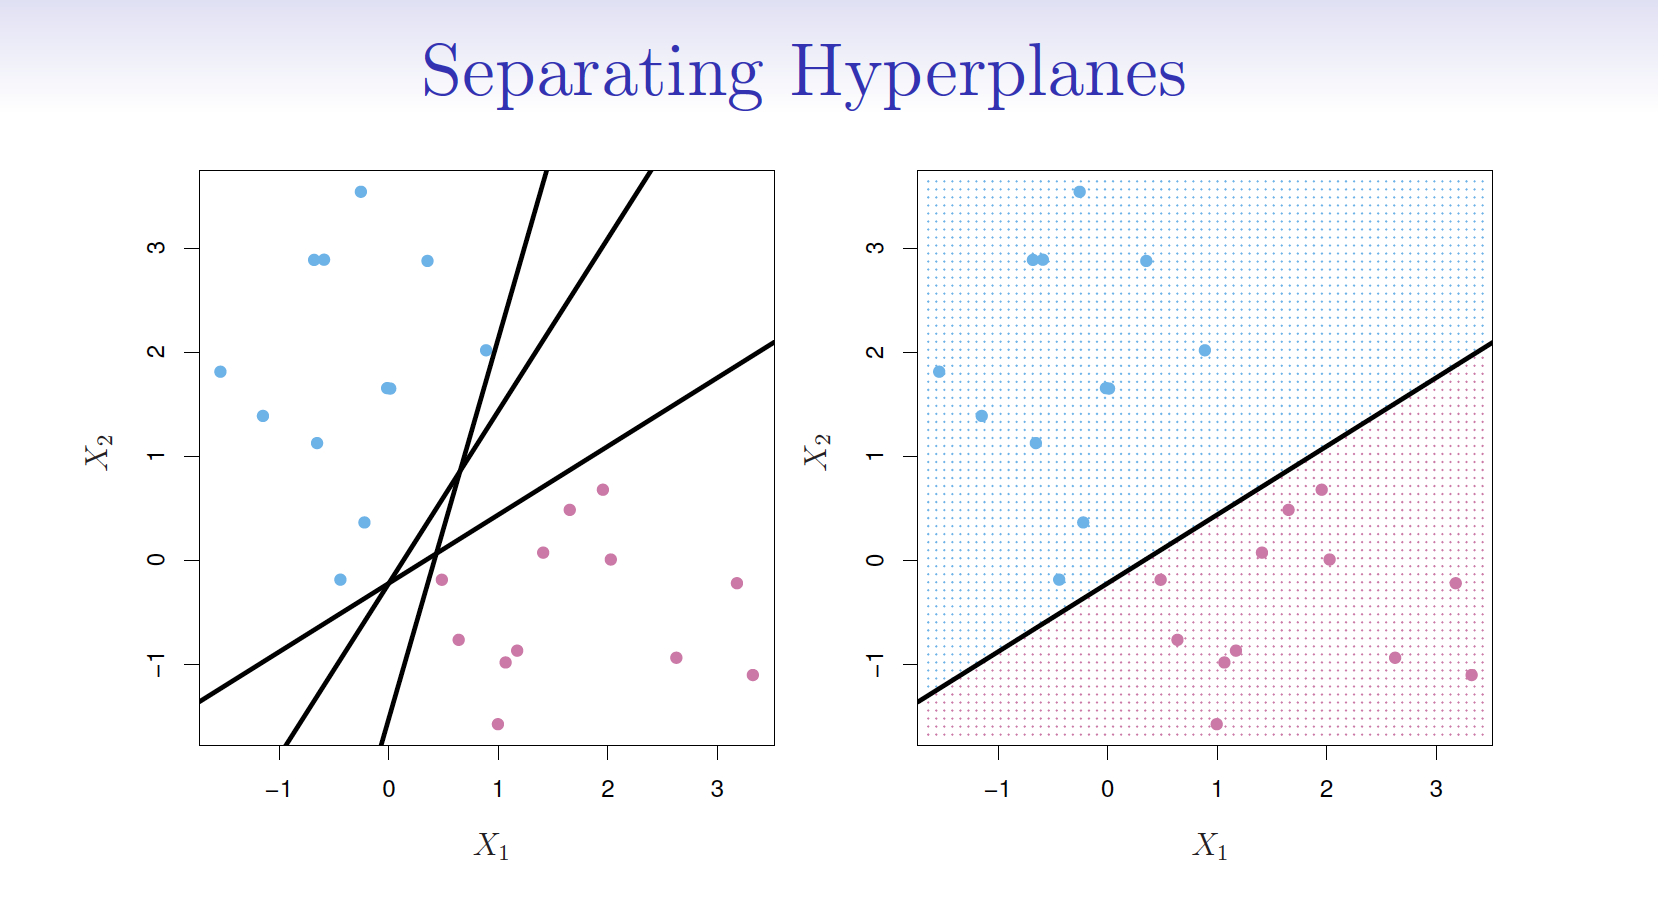 Support Vector Machines — A Brief Overview - Towards Data Science